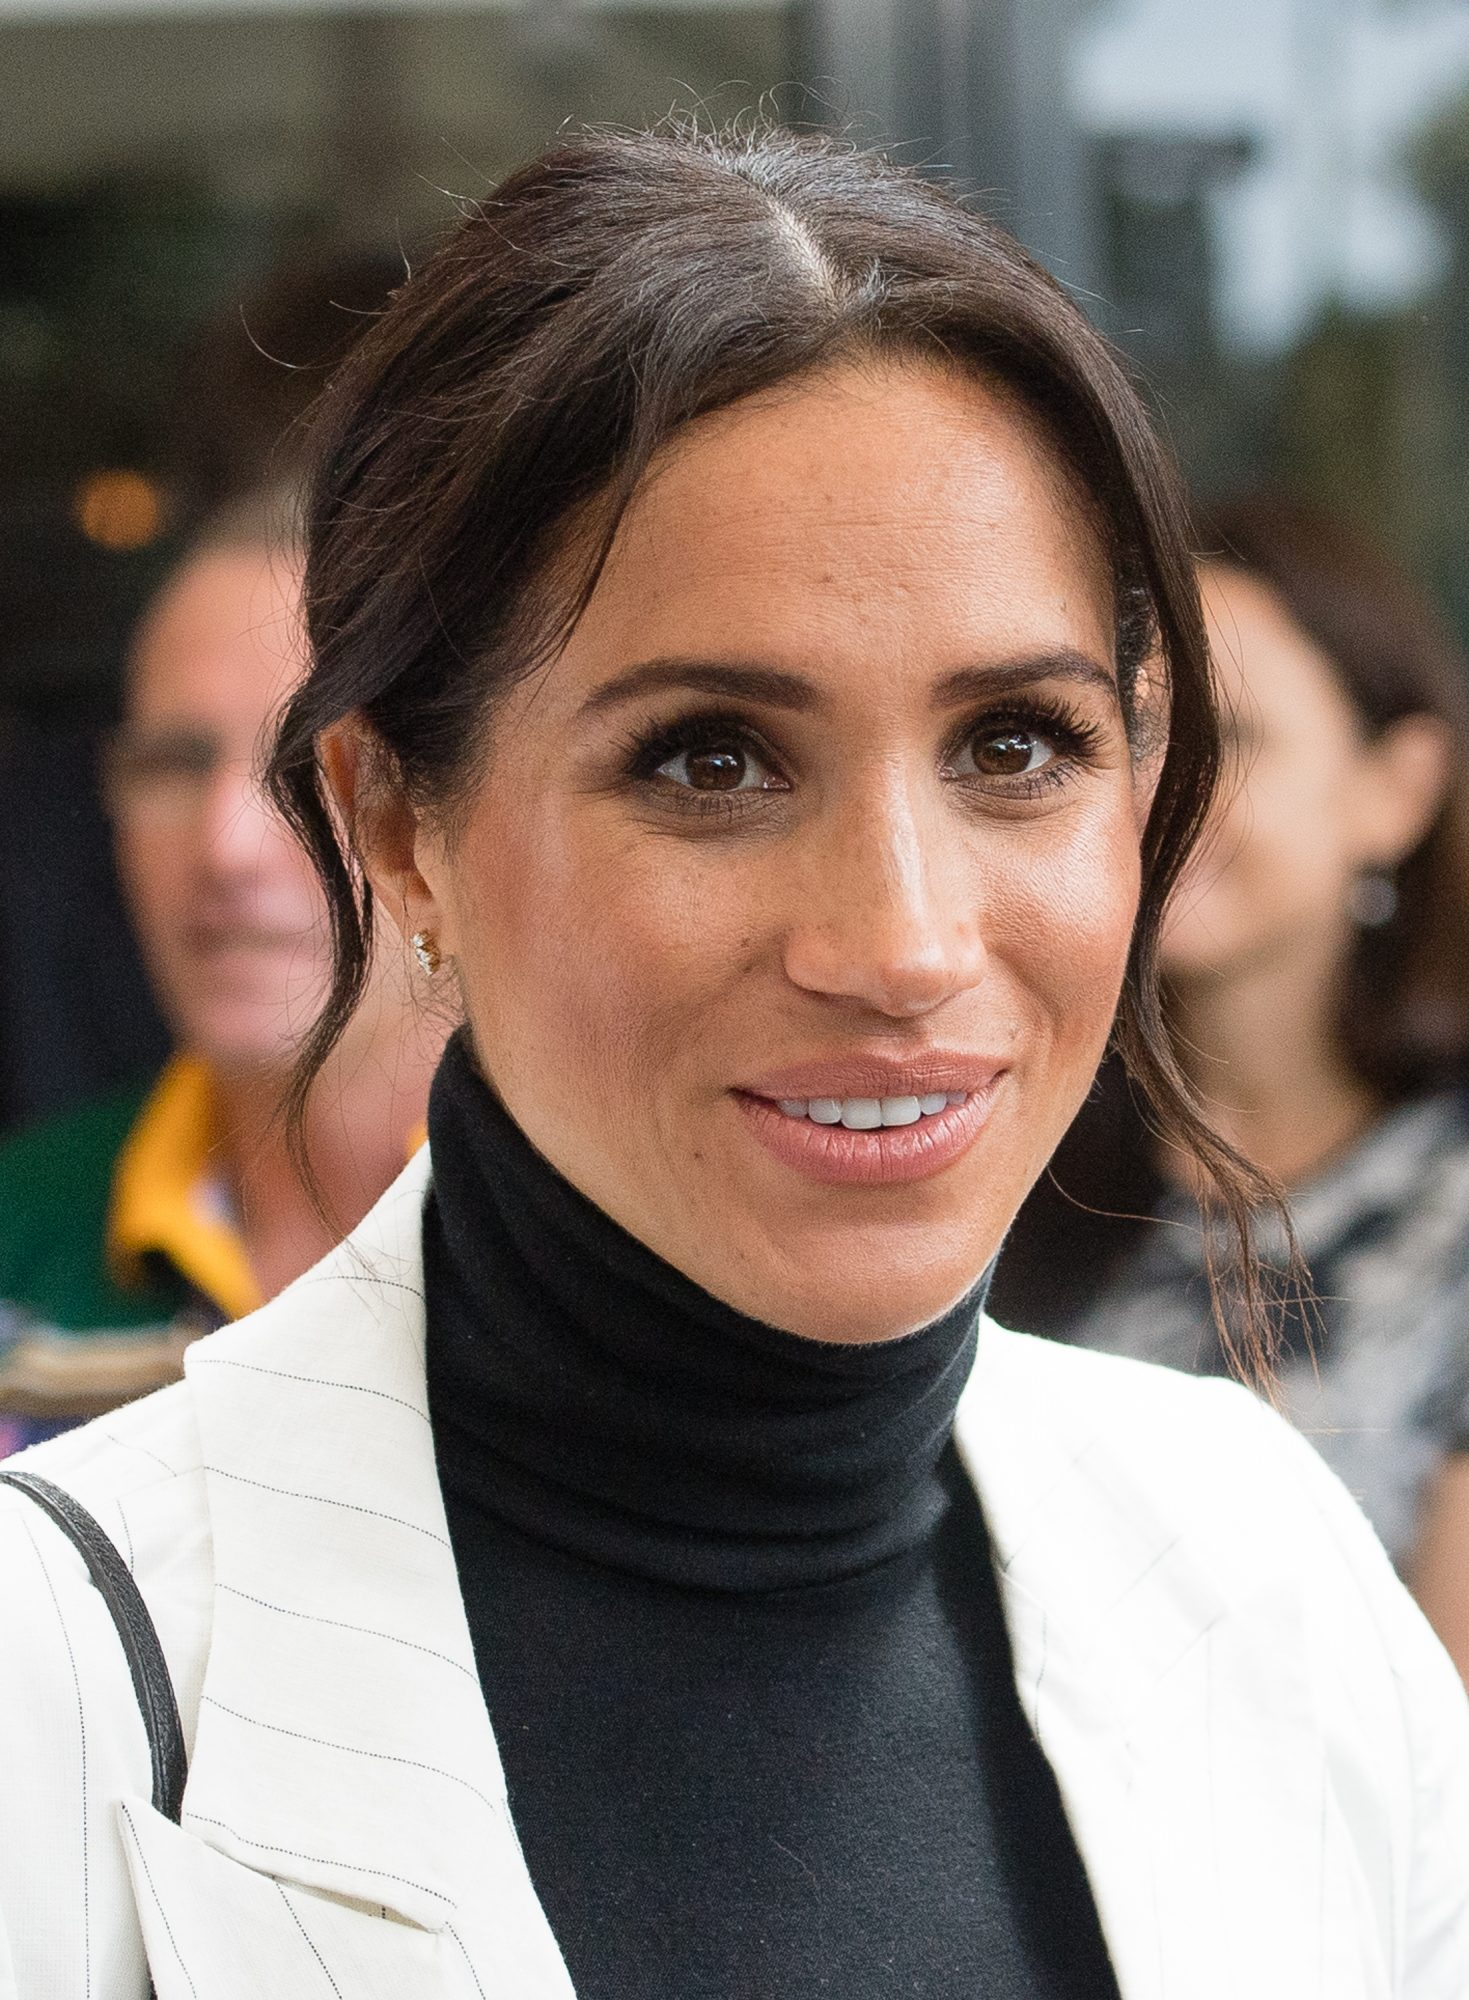 Meghan Markle Just Wore Sneakers to a Royal Event for the First Time–Here's Where to Buy Them